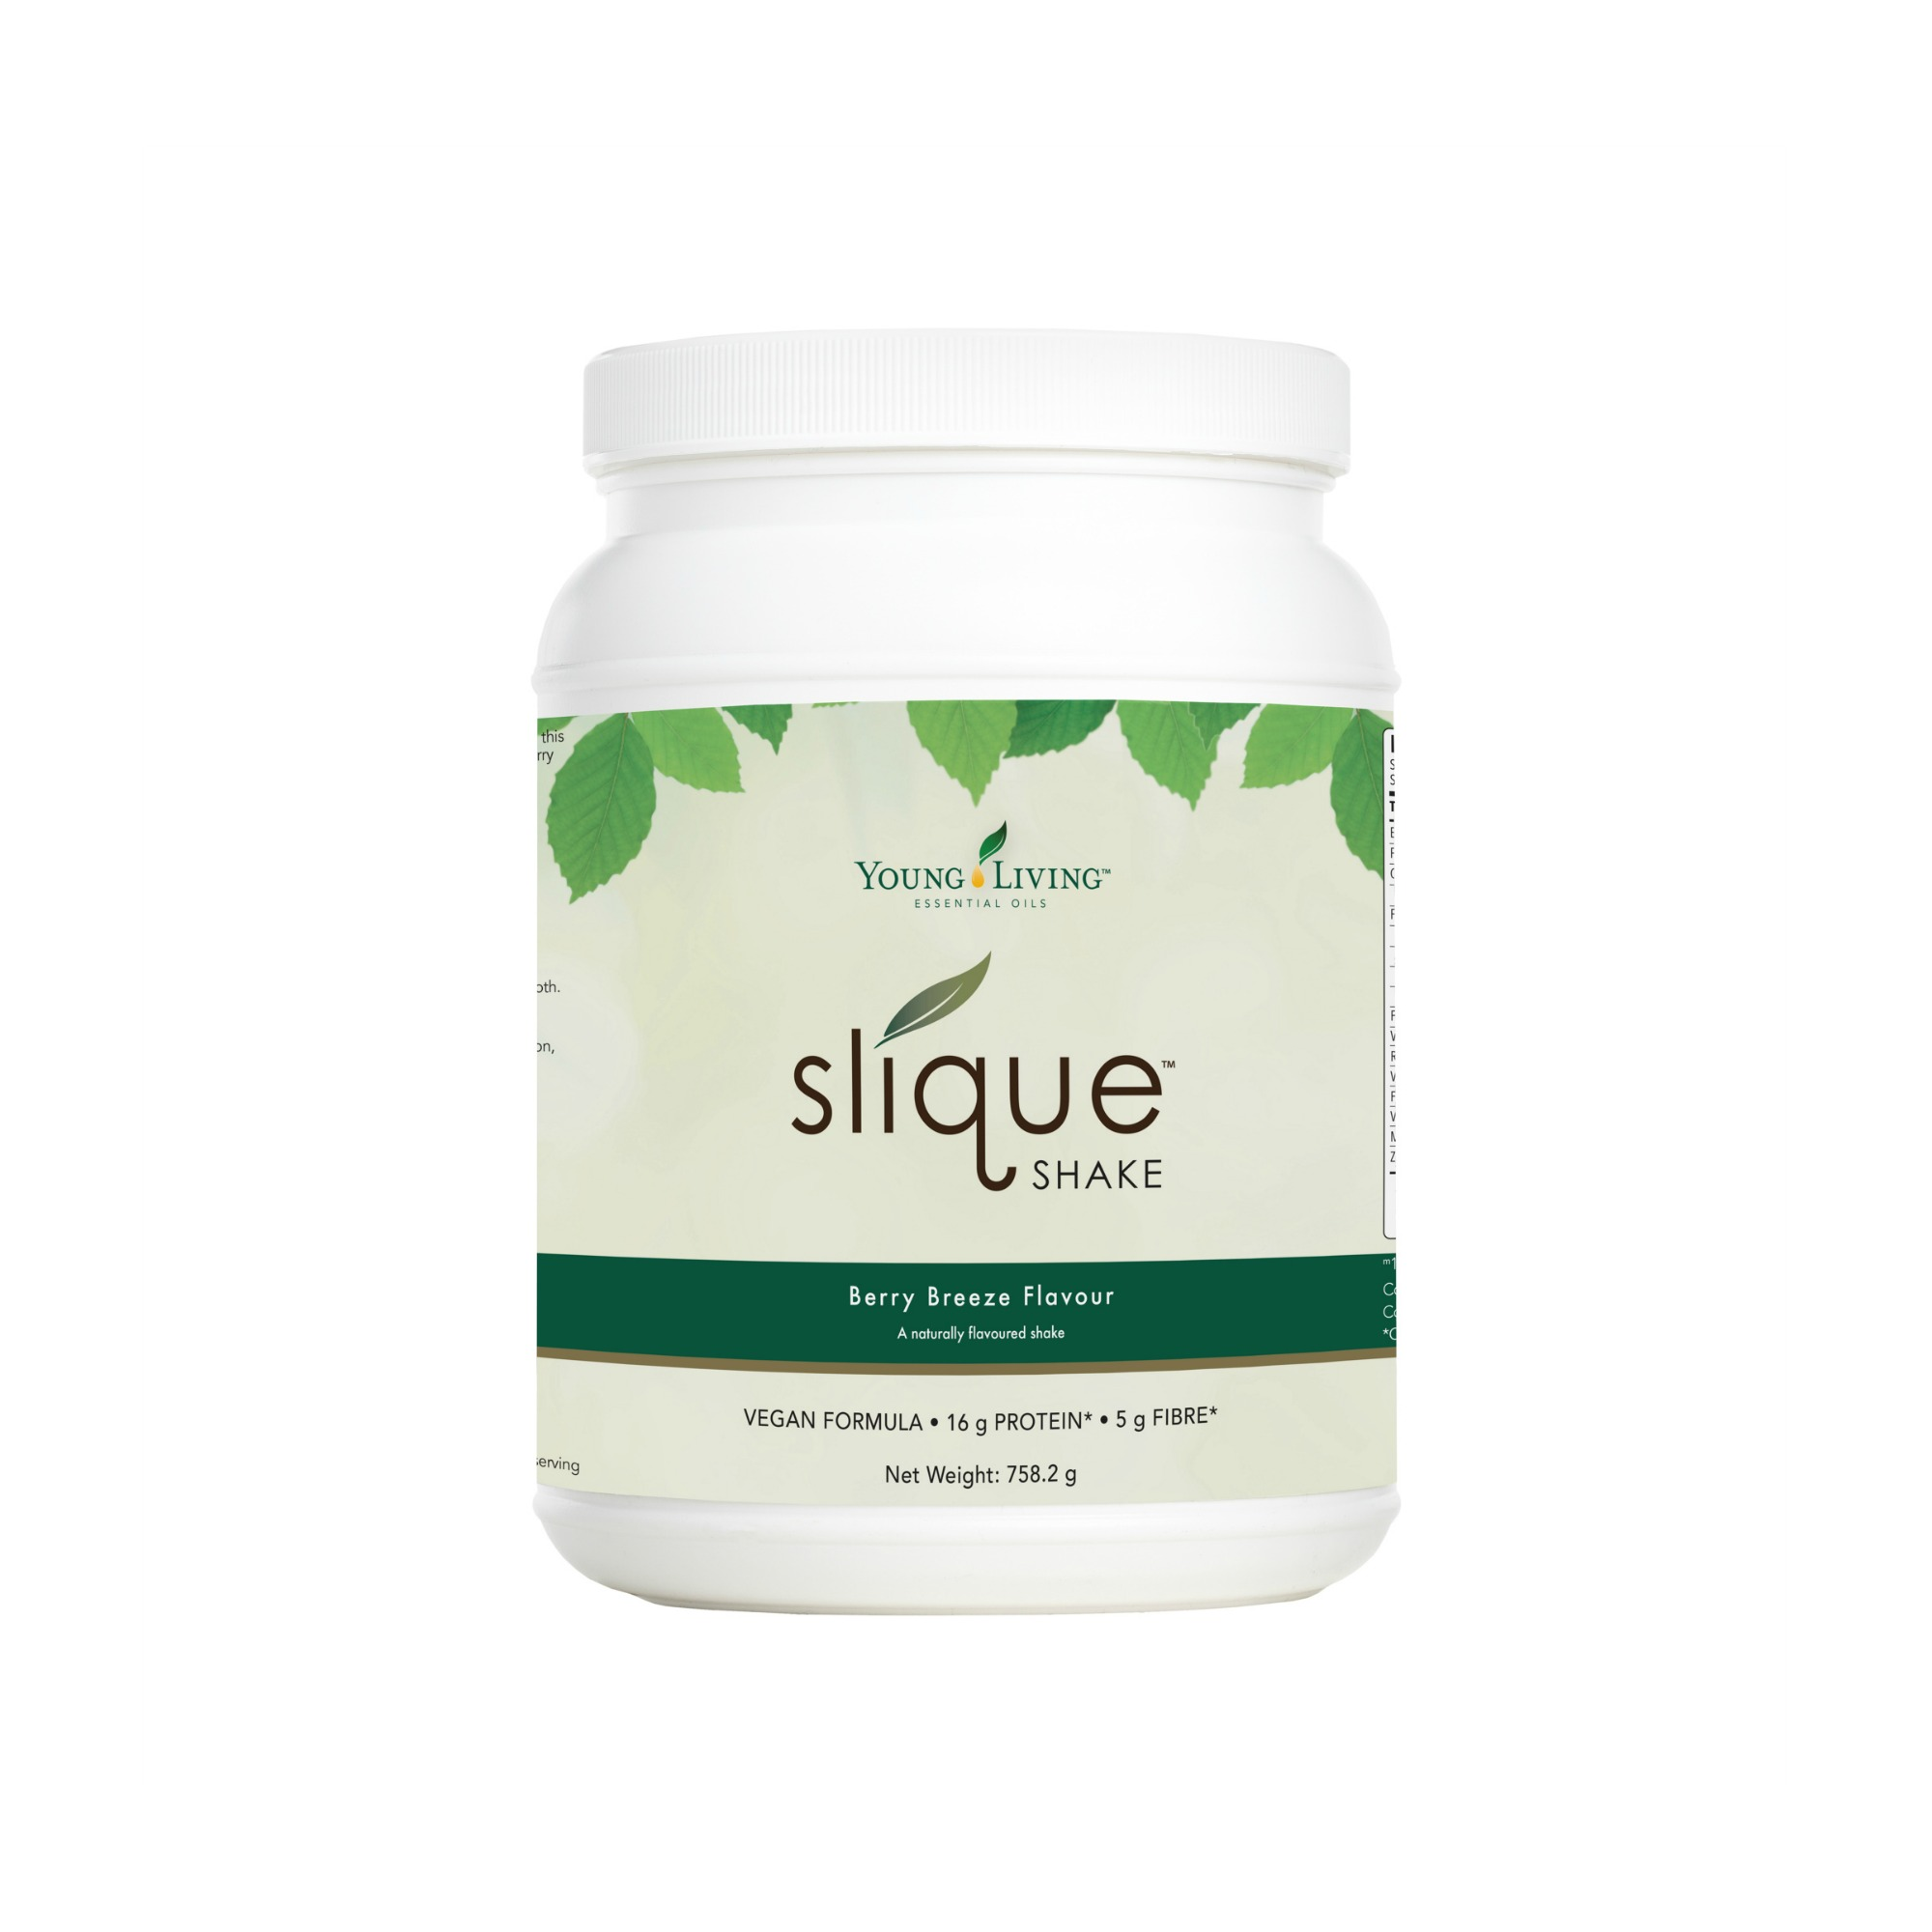 SLIQUE SHAKE    Slique® Shake is a complete meal replacement shake that provides quick, satisfying, and delicious nutrition. Formulated with Slique Essence Essential Oil Blend, this shake may support healthy weight management when combined with regular exercise and a sensible diet. Its berry flavor is great on its own, or mixed with almond milk or fruit, and its vegan formula contains no artificial colors, flavors, preservatives or GMO ingredients. It is naturally sweetened with Stevia, organic coconut palm sugar, wolfberries, and strawberries. The formula also includes pea protein, quinoa, wolfberry, pumpkin seed protein, and alfalfa grass juice, making it not only a tasty protein shake but an excellent source of dietary fiber as well.   Click here   to learn more about this product.